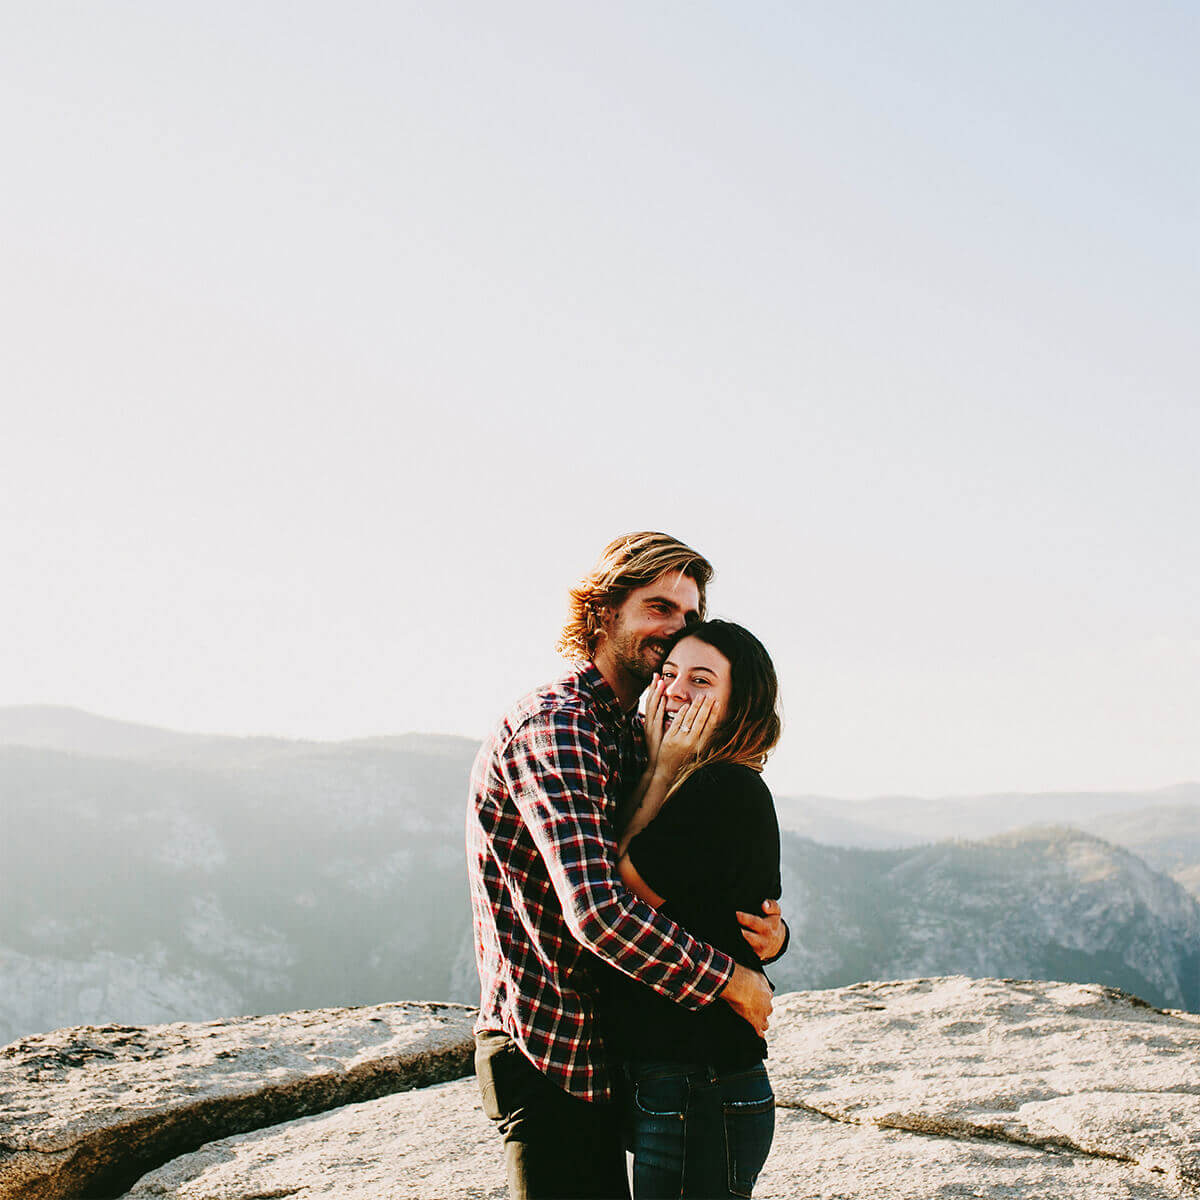 Couple embracing on top of mountain after engagement proposal